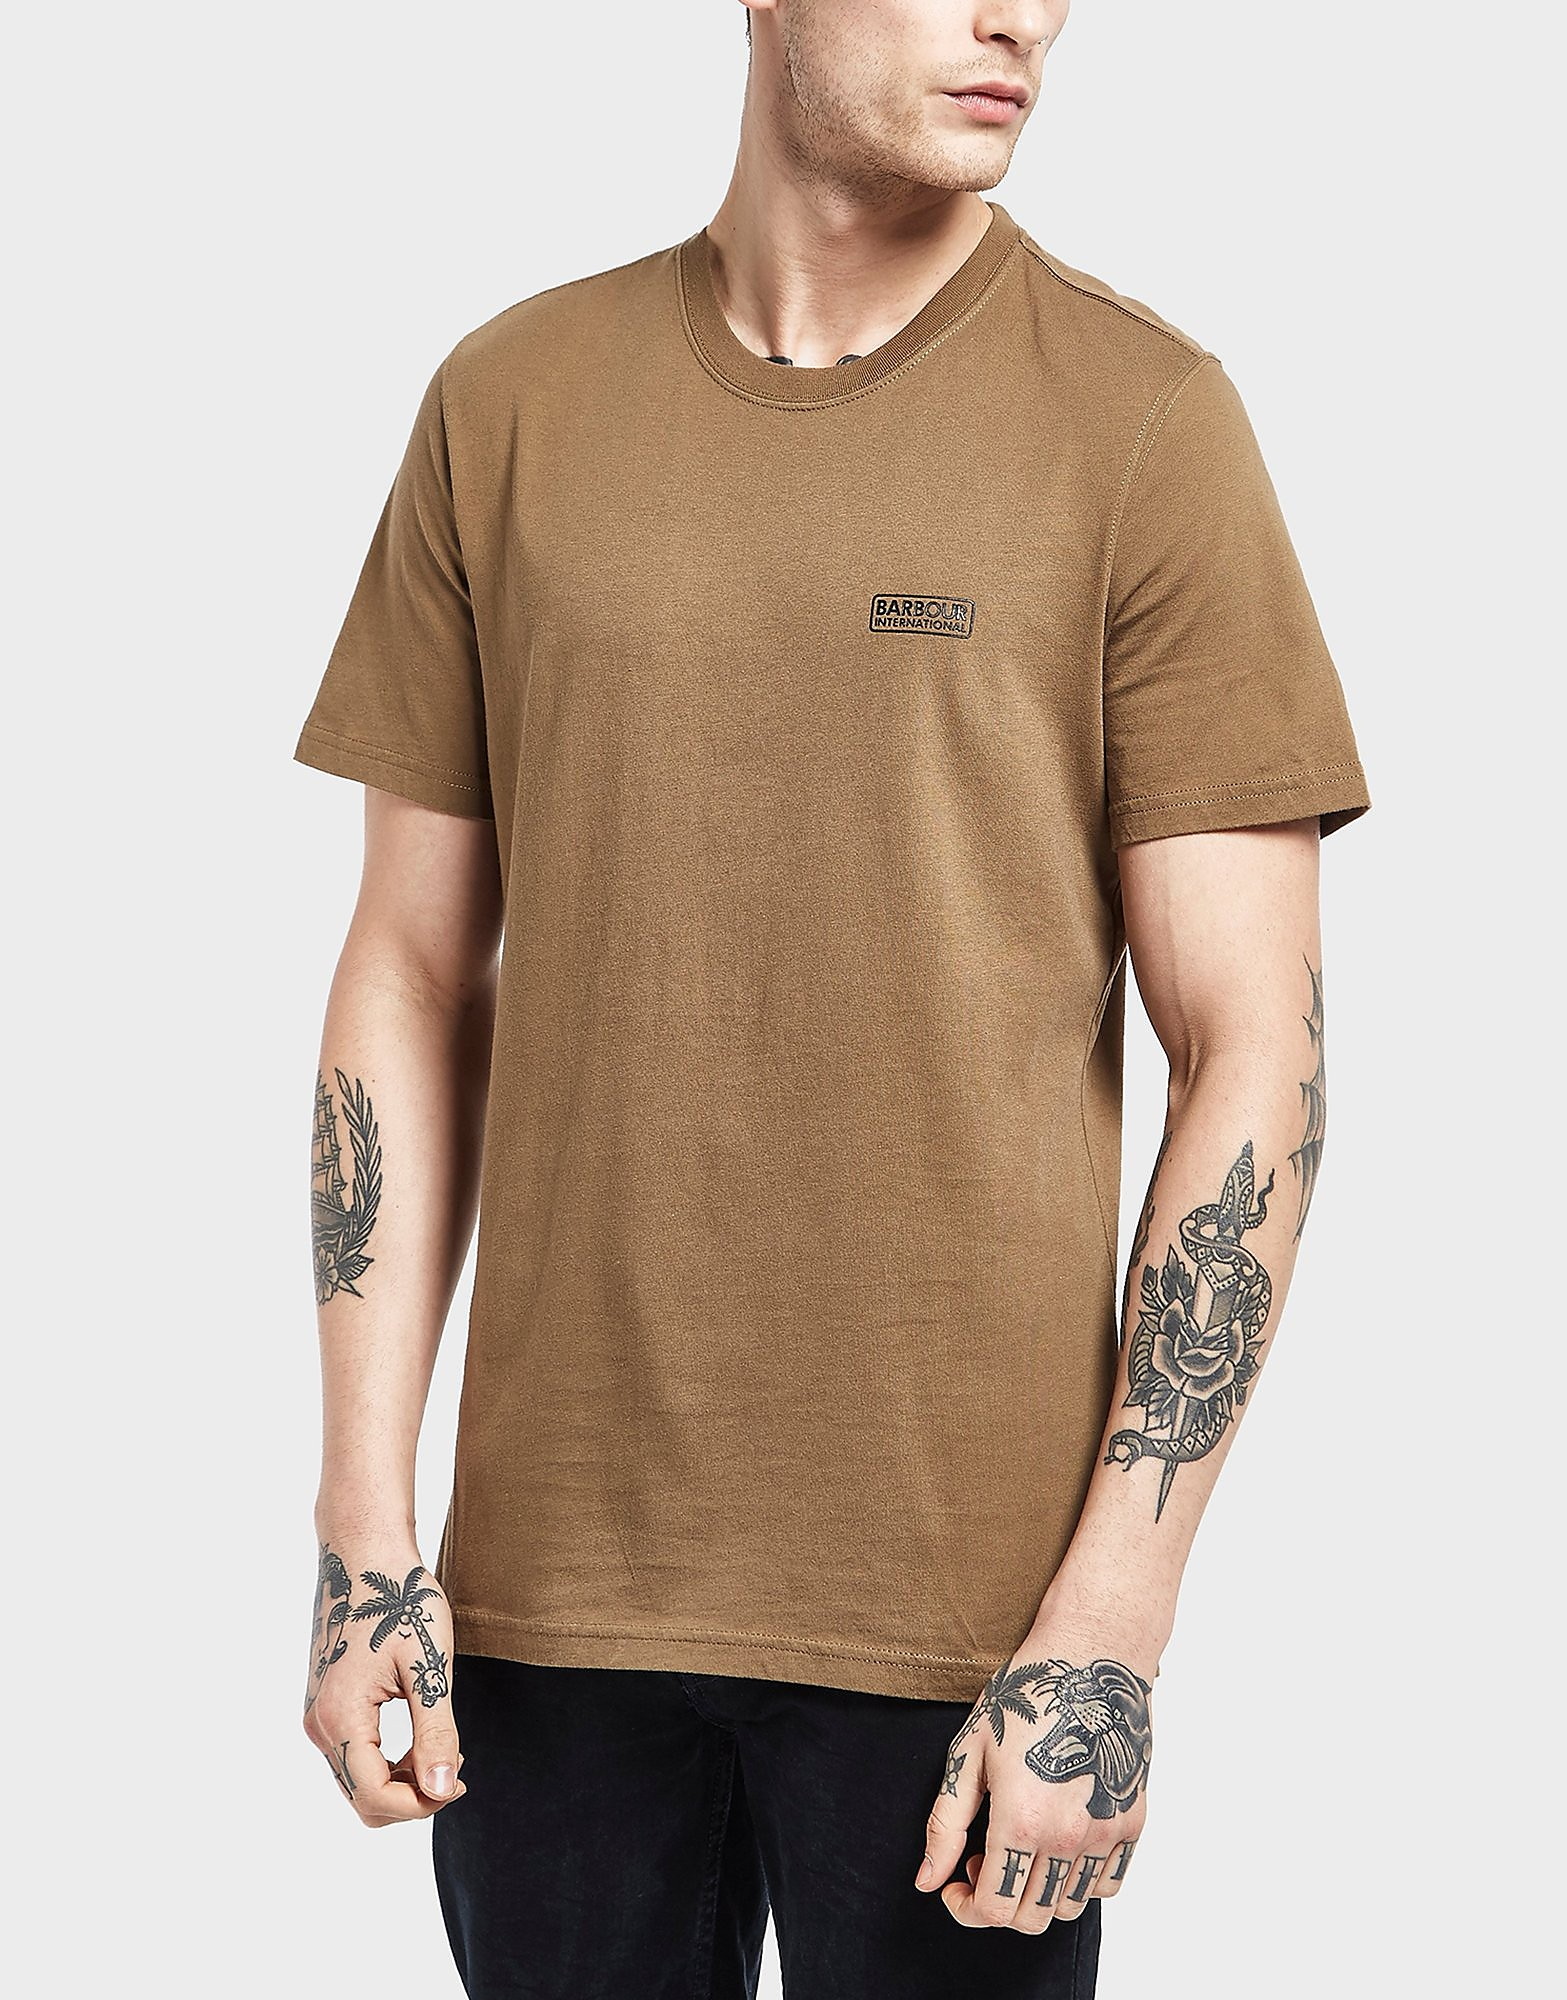 Barbour International Logo T-Shirt - Exclusive